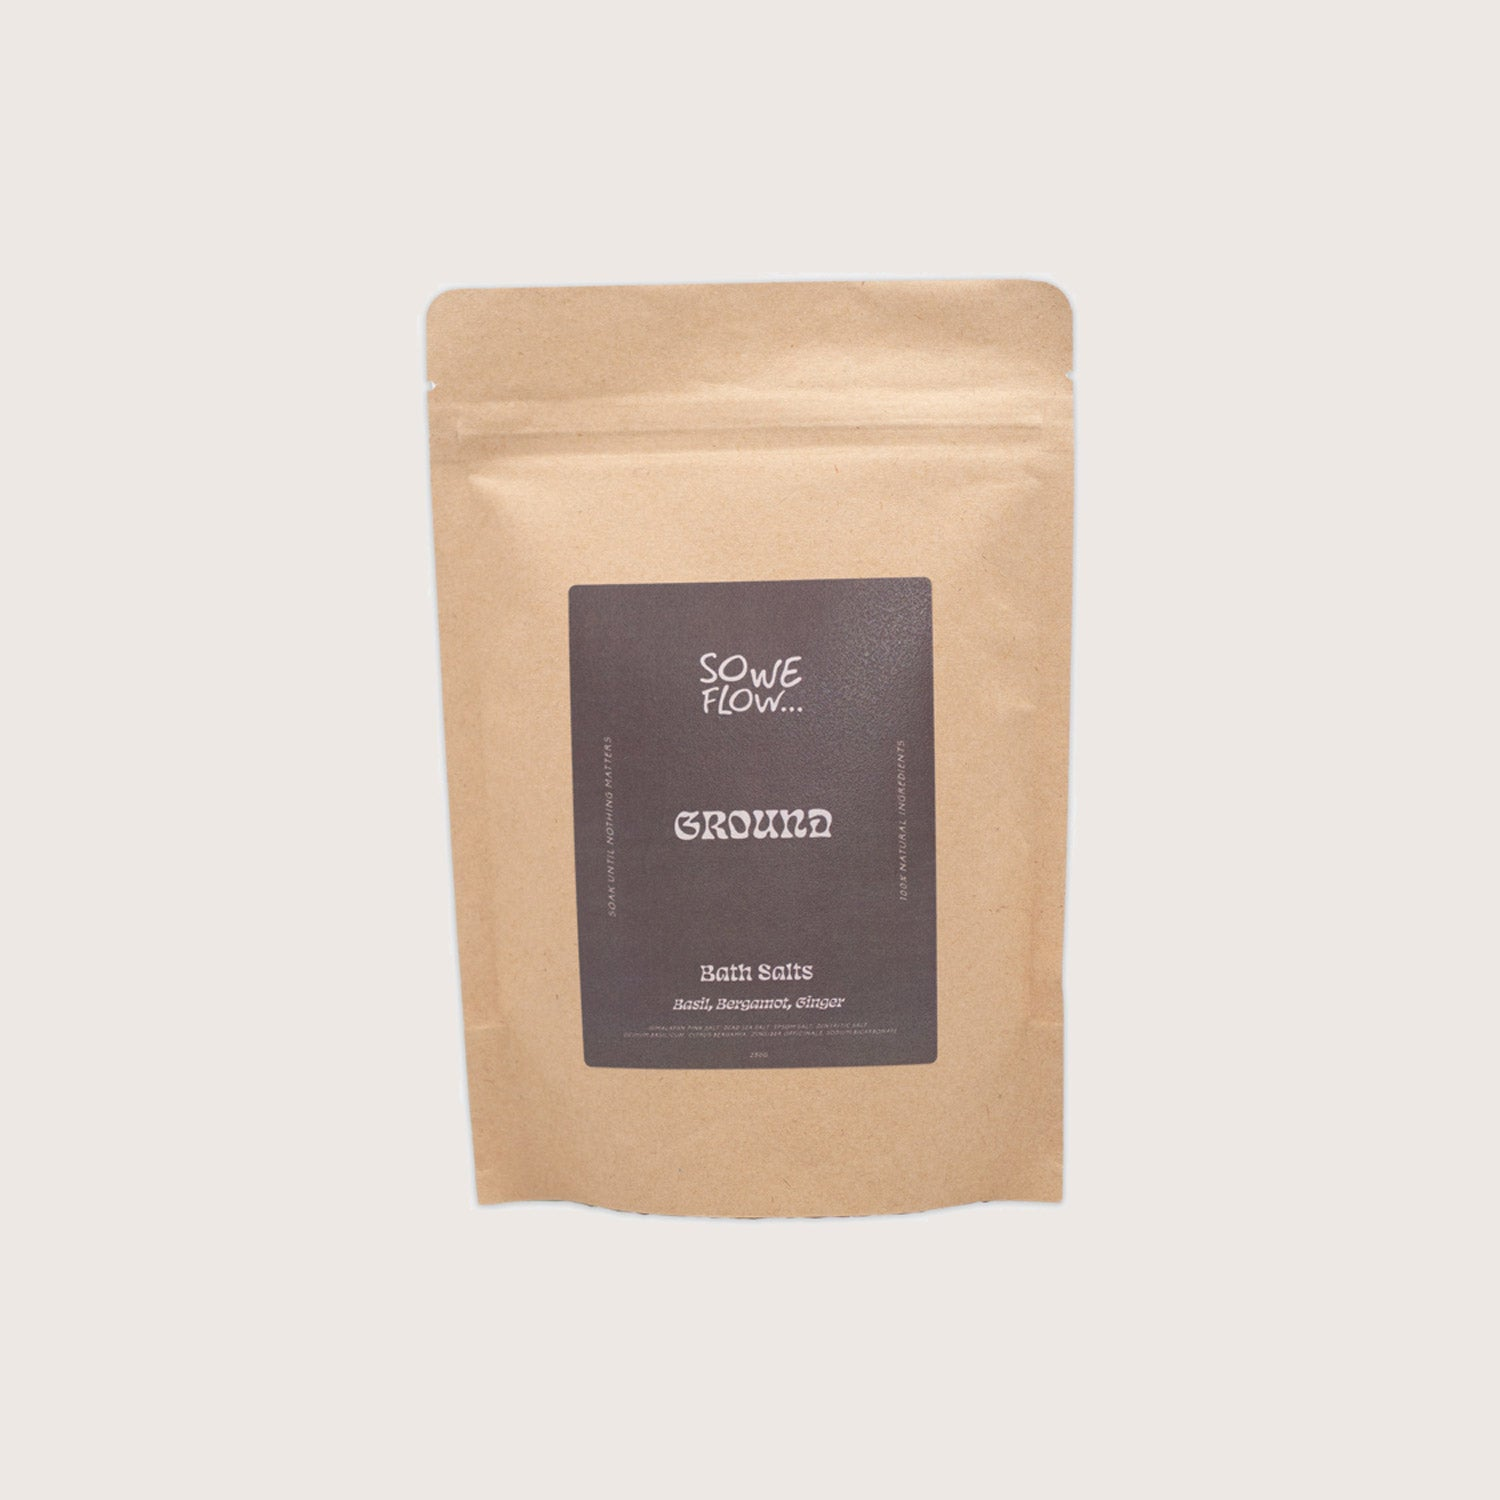 Ground - Bath Salts by So We Flow...